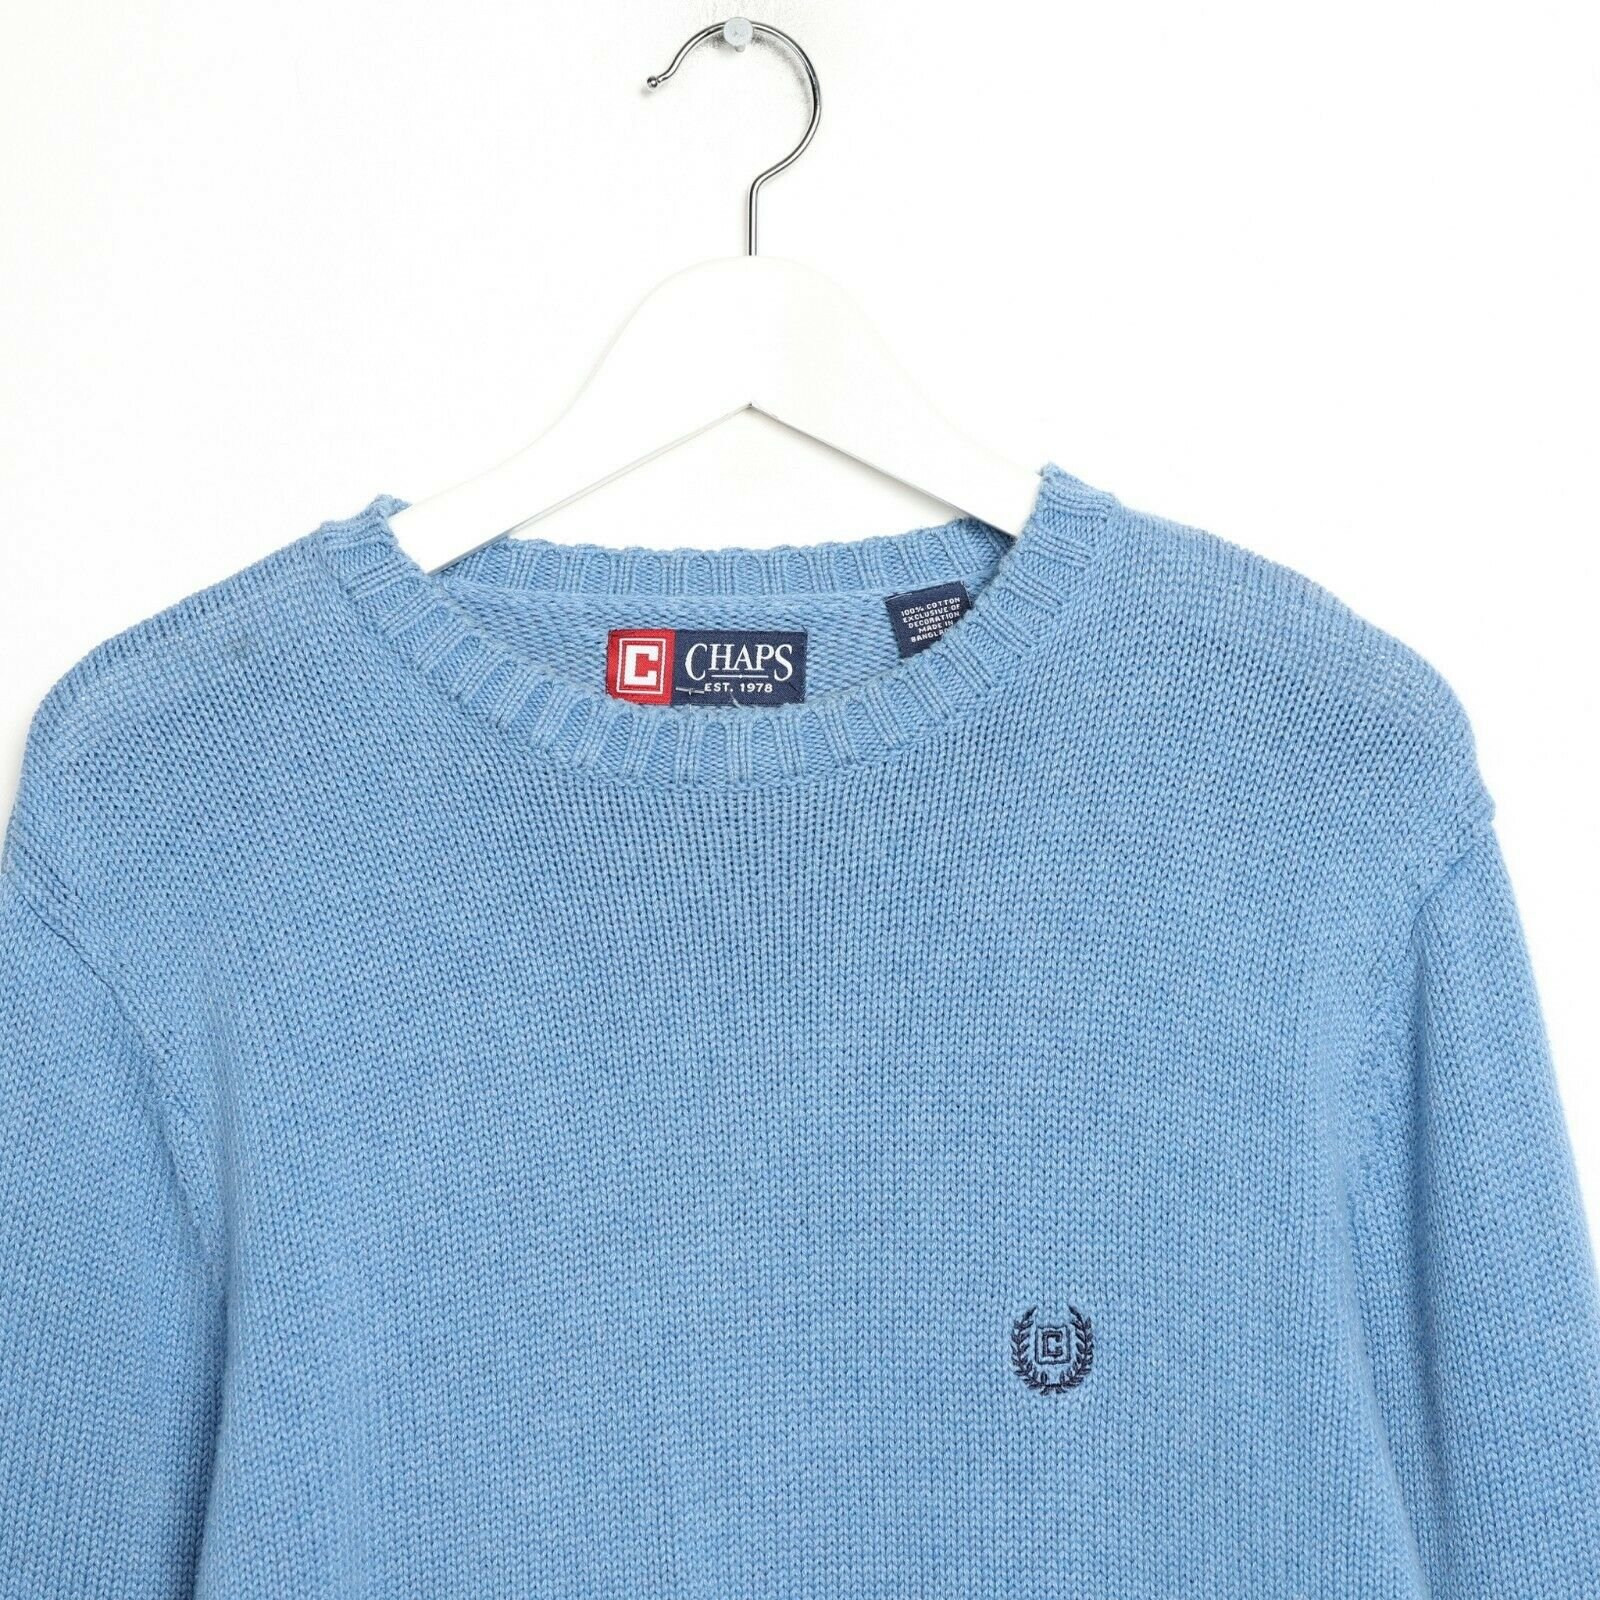 Vintage CHAPS RALPH LAUREN Crest Logo Knitted Sweatshirt Jumper Blue Medium M